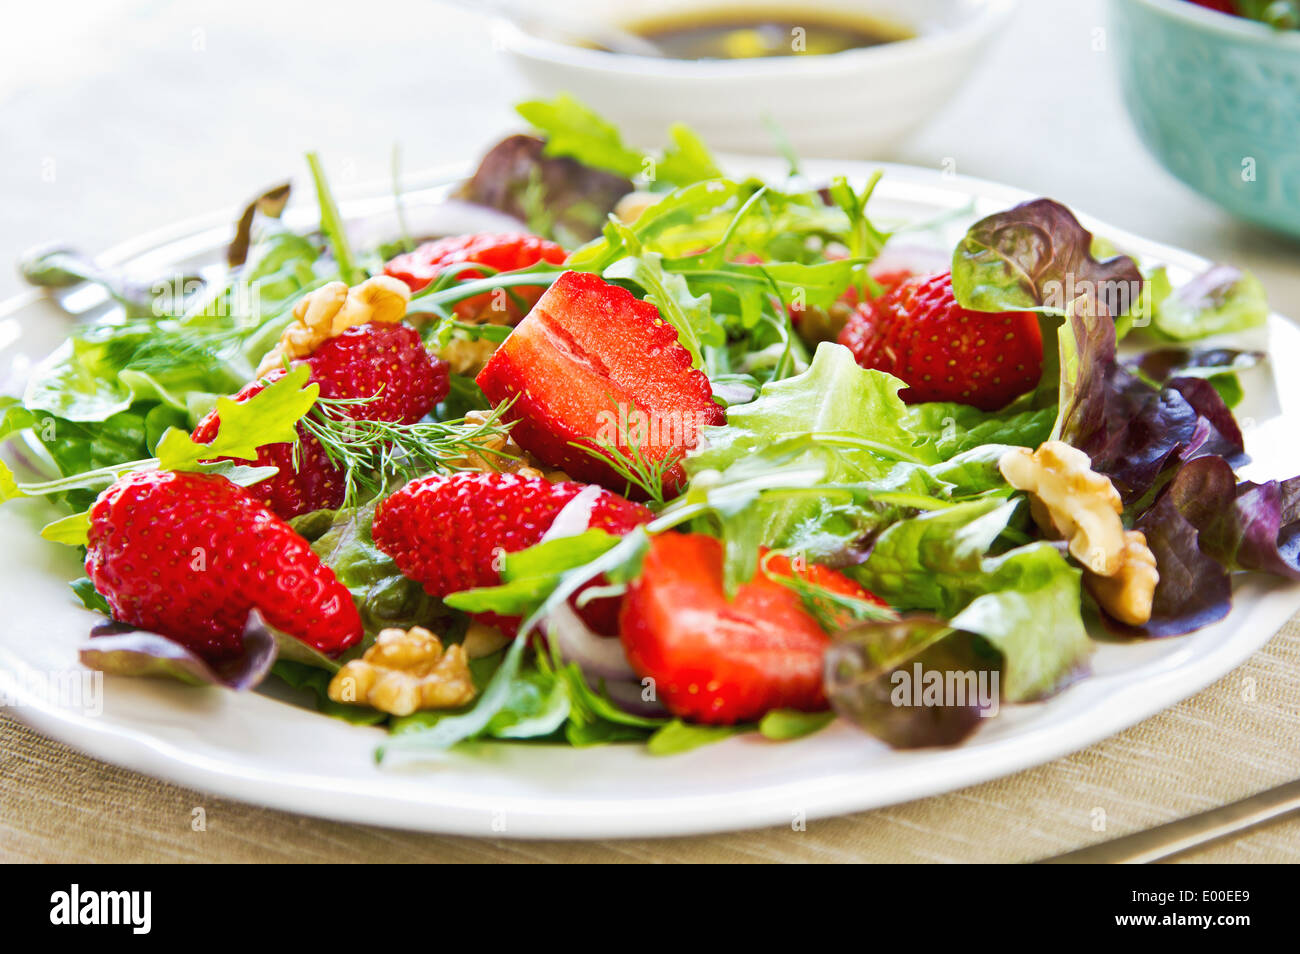 Stock Photo Strawberry With Walnut And Rocket Salad By Balsamic Dressing